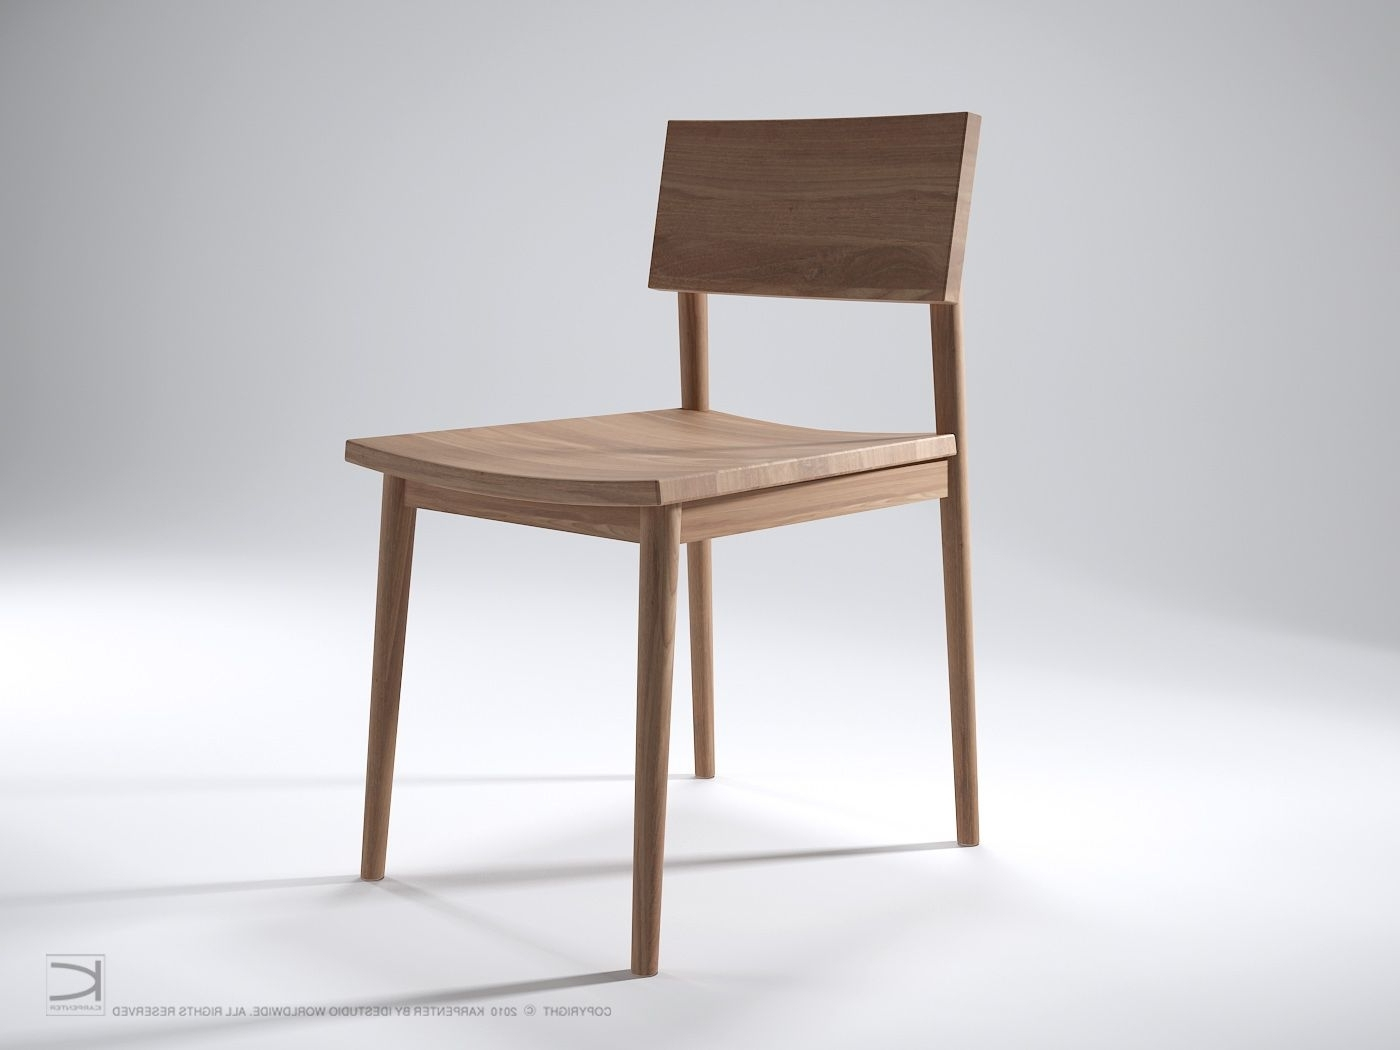 2017 A Very Simple And Stylish Dining Chair, Which Is Beautiful And Within Stylish Dining Chairs (Gallery 8 of 25)